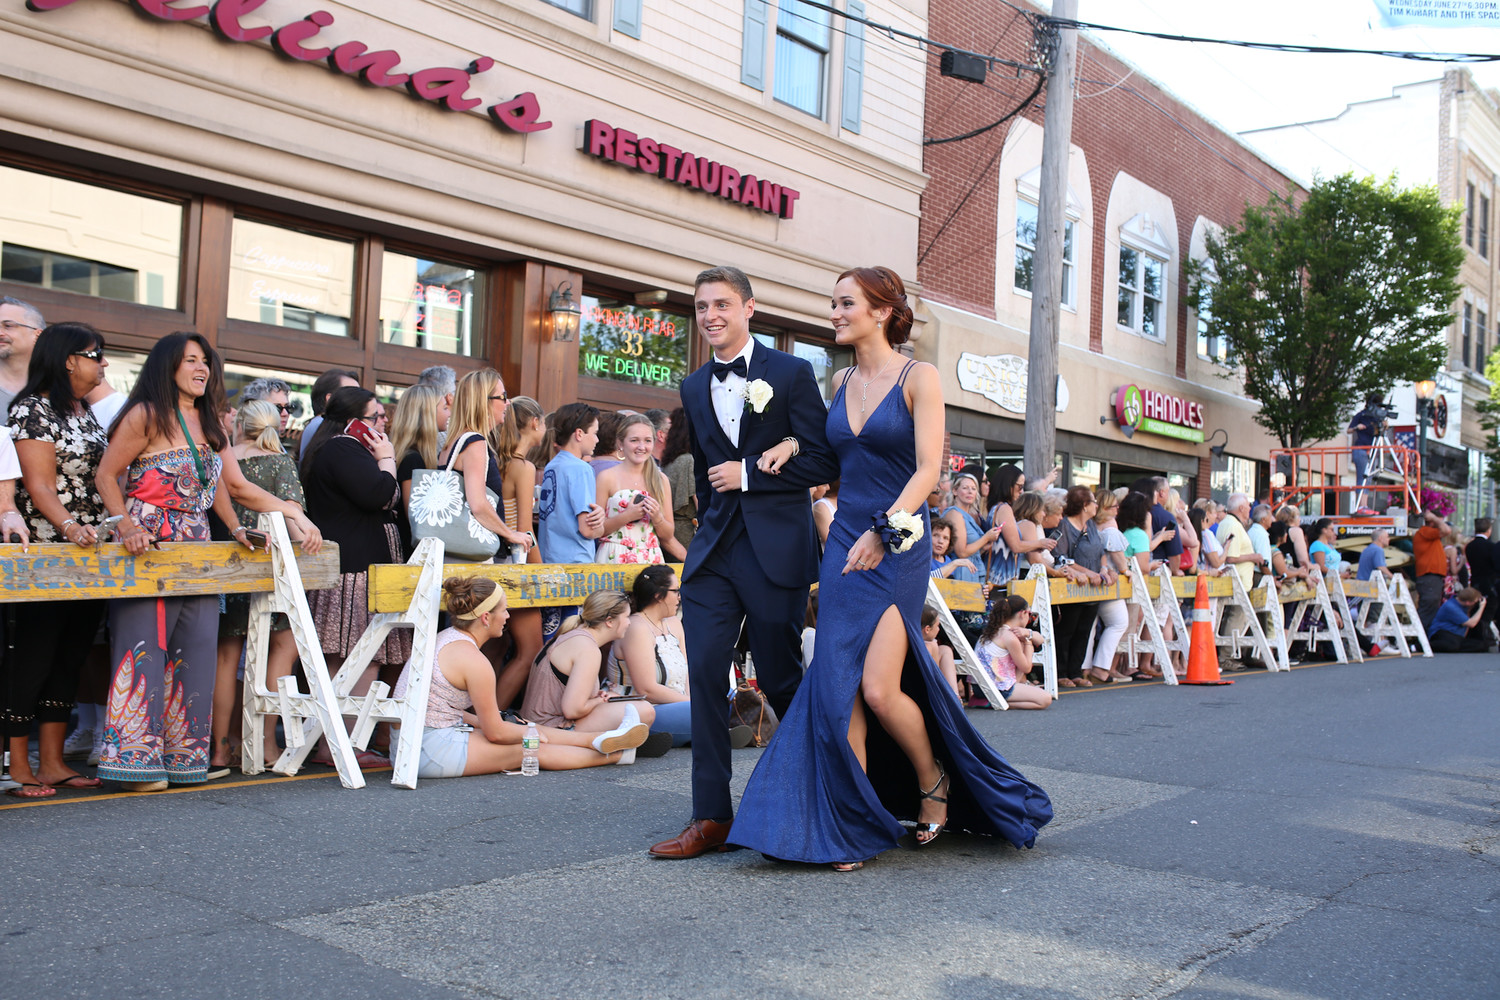 Seniors Michael Kantor and Sophia Sarnataro paraded down Atlantic Avenue as part of the village's annual pre-prom celebration.